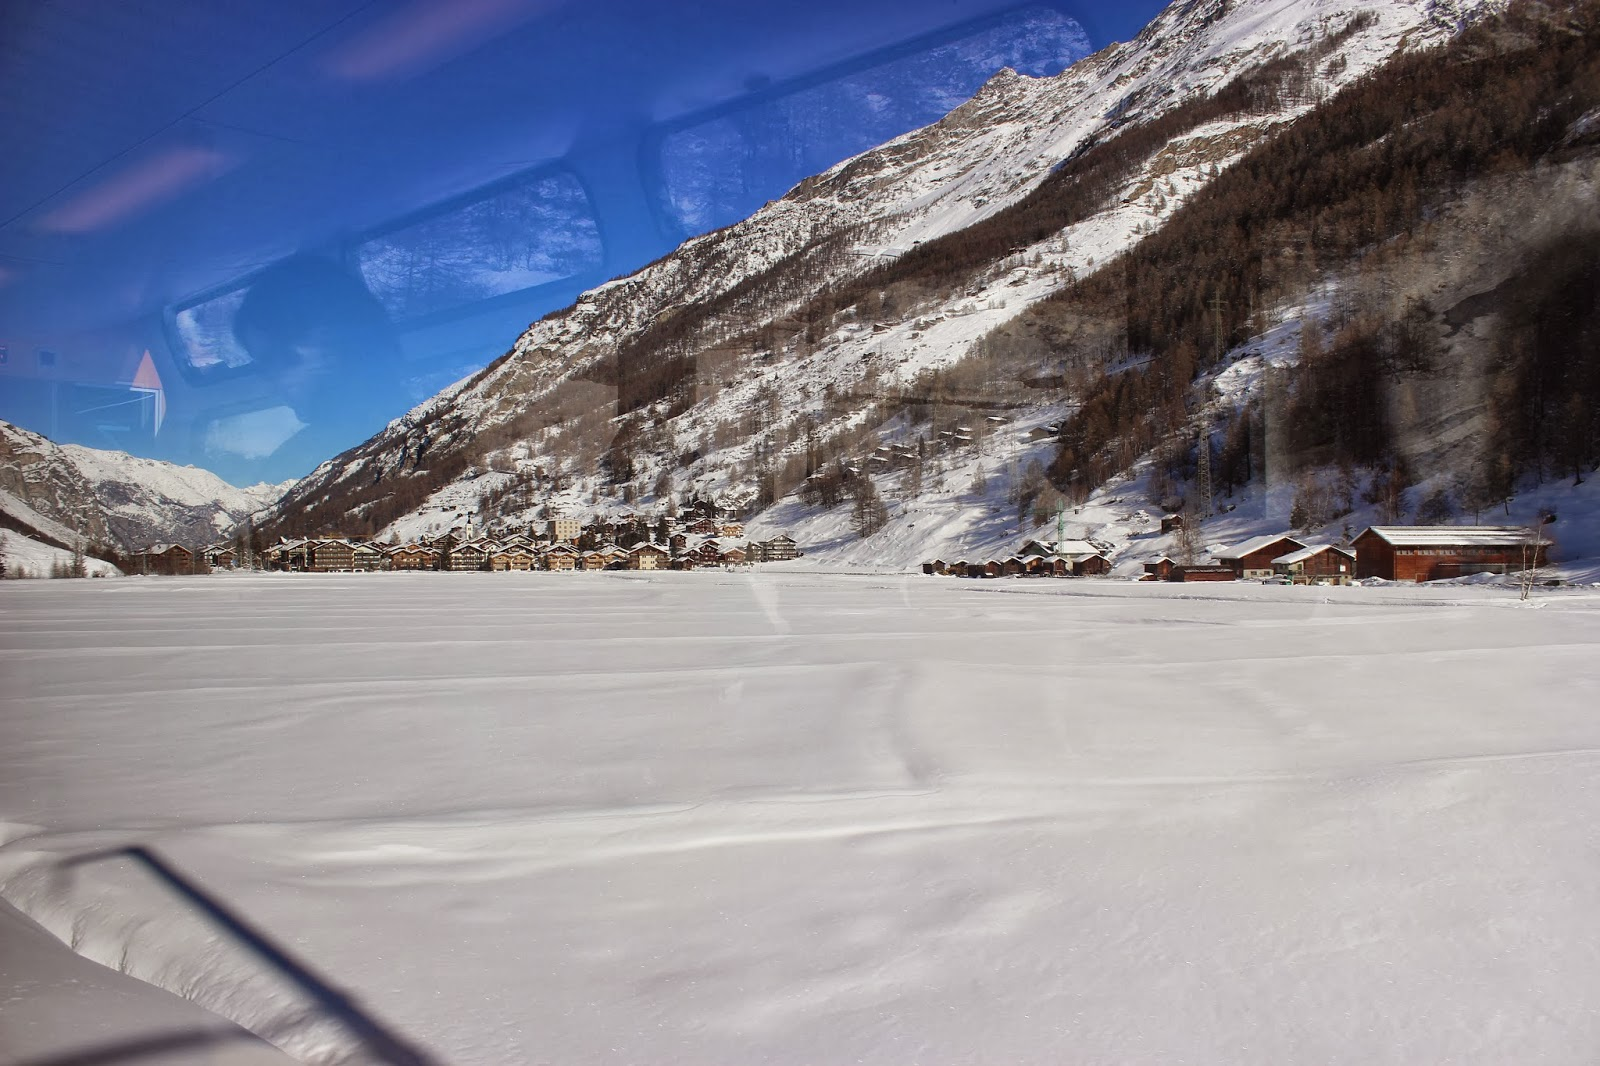 ThatGuyLukey, Skiing, Zermatt, Switzerland, Ski Season, Holiday, Ski, Europe, Zermatt Switzerland